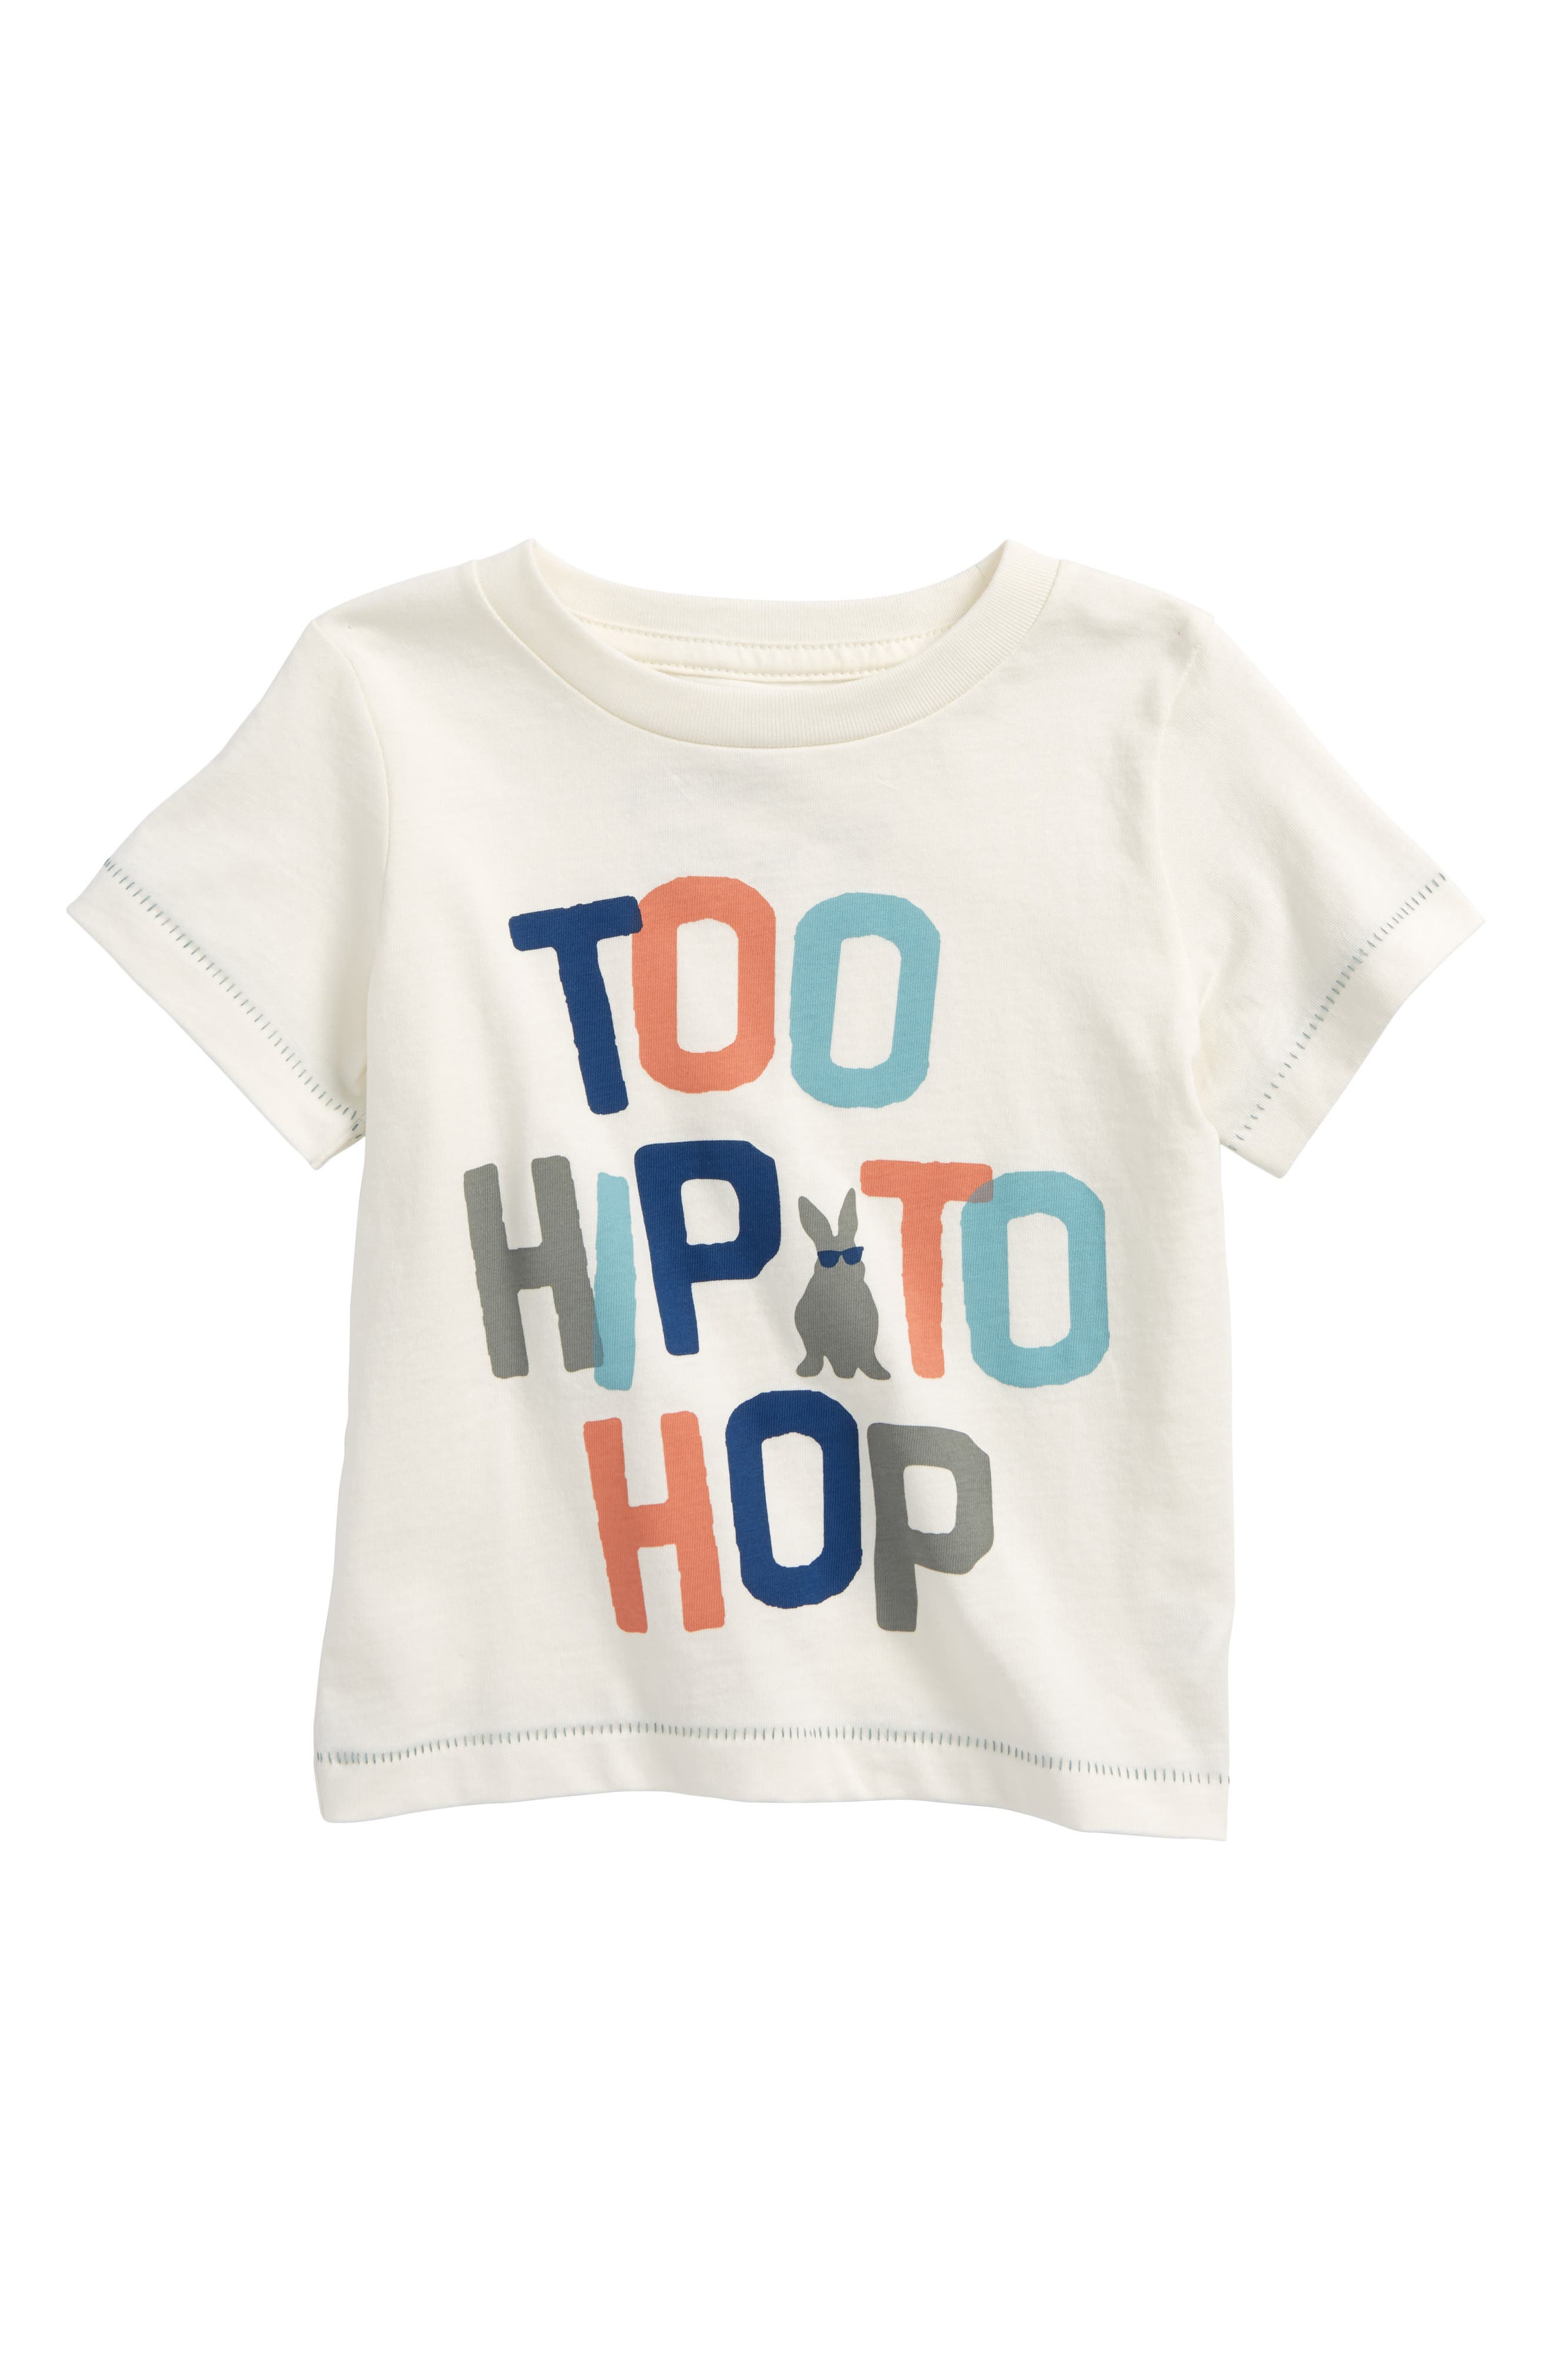 Too Hip To Hop Graphic T-Shirt,                             Main thumbnail 1, color,                             900